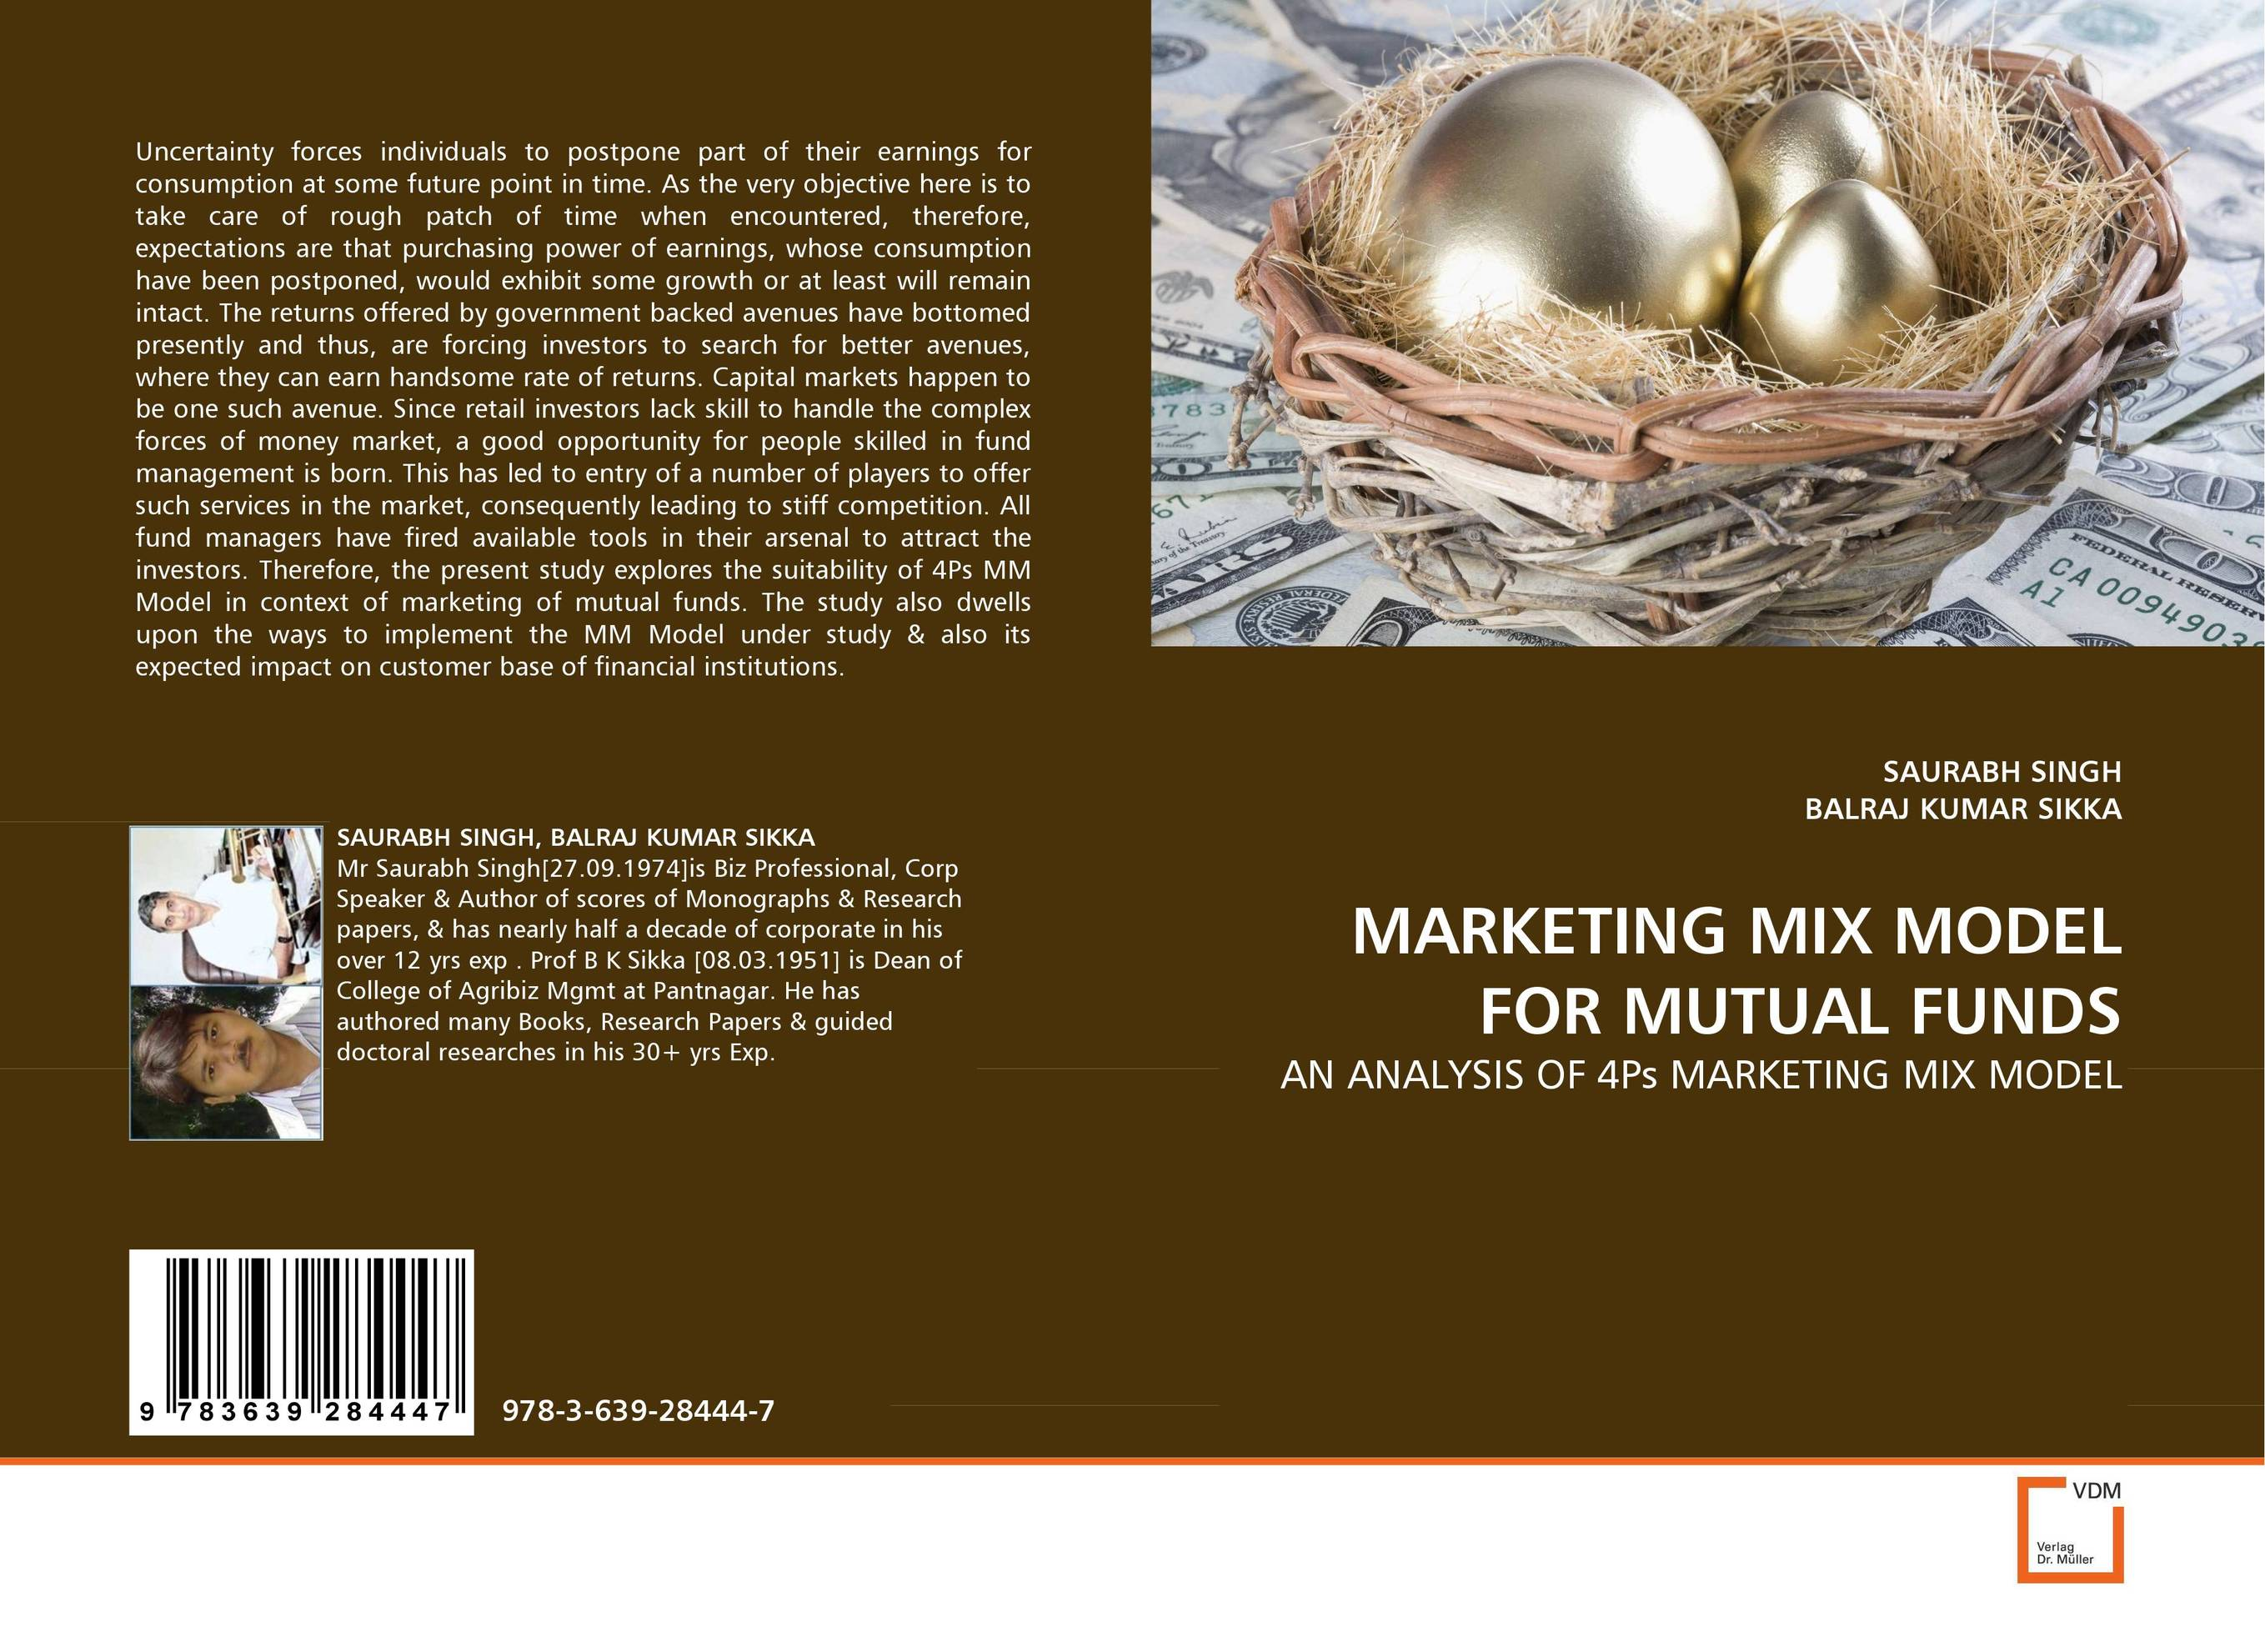 MARKETING MIX MODEL FOR MUTUAL FUNDS john bogle c bogle on mutual funds new perspectives for the intelligent investor